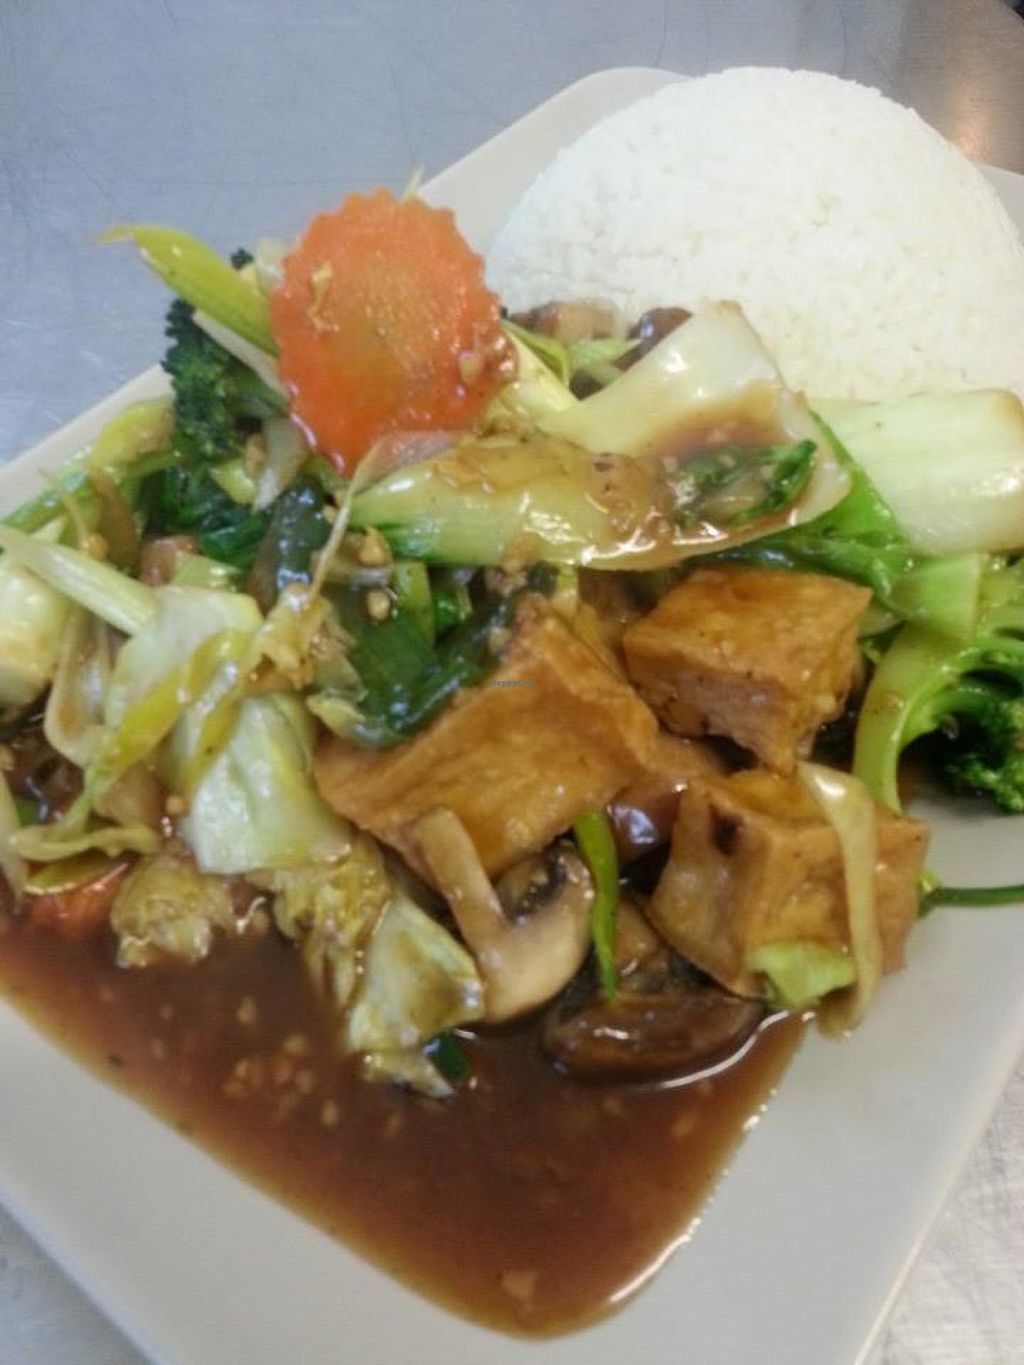 """Photo of The Junction  by <a href=""""/members/profile/LauraStone90"""">LauraStone90</a> <br/>Pak Choi, Tofu & Mixed Veg Stir-fry <br/> June 15, 2016  - <a href='/contact/abuse/image/74911/154100'>Report</a>"""